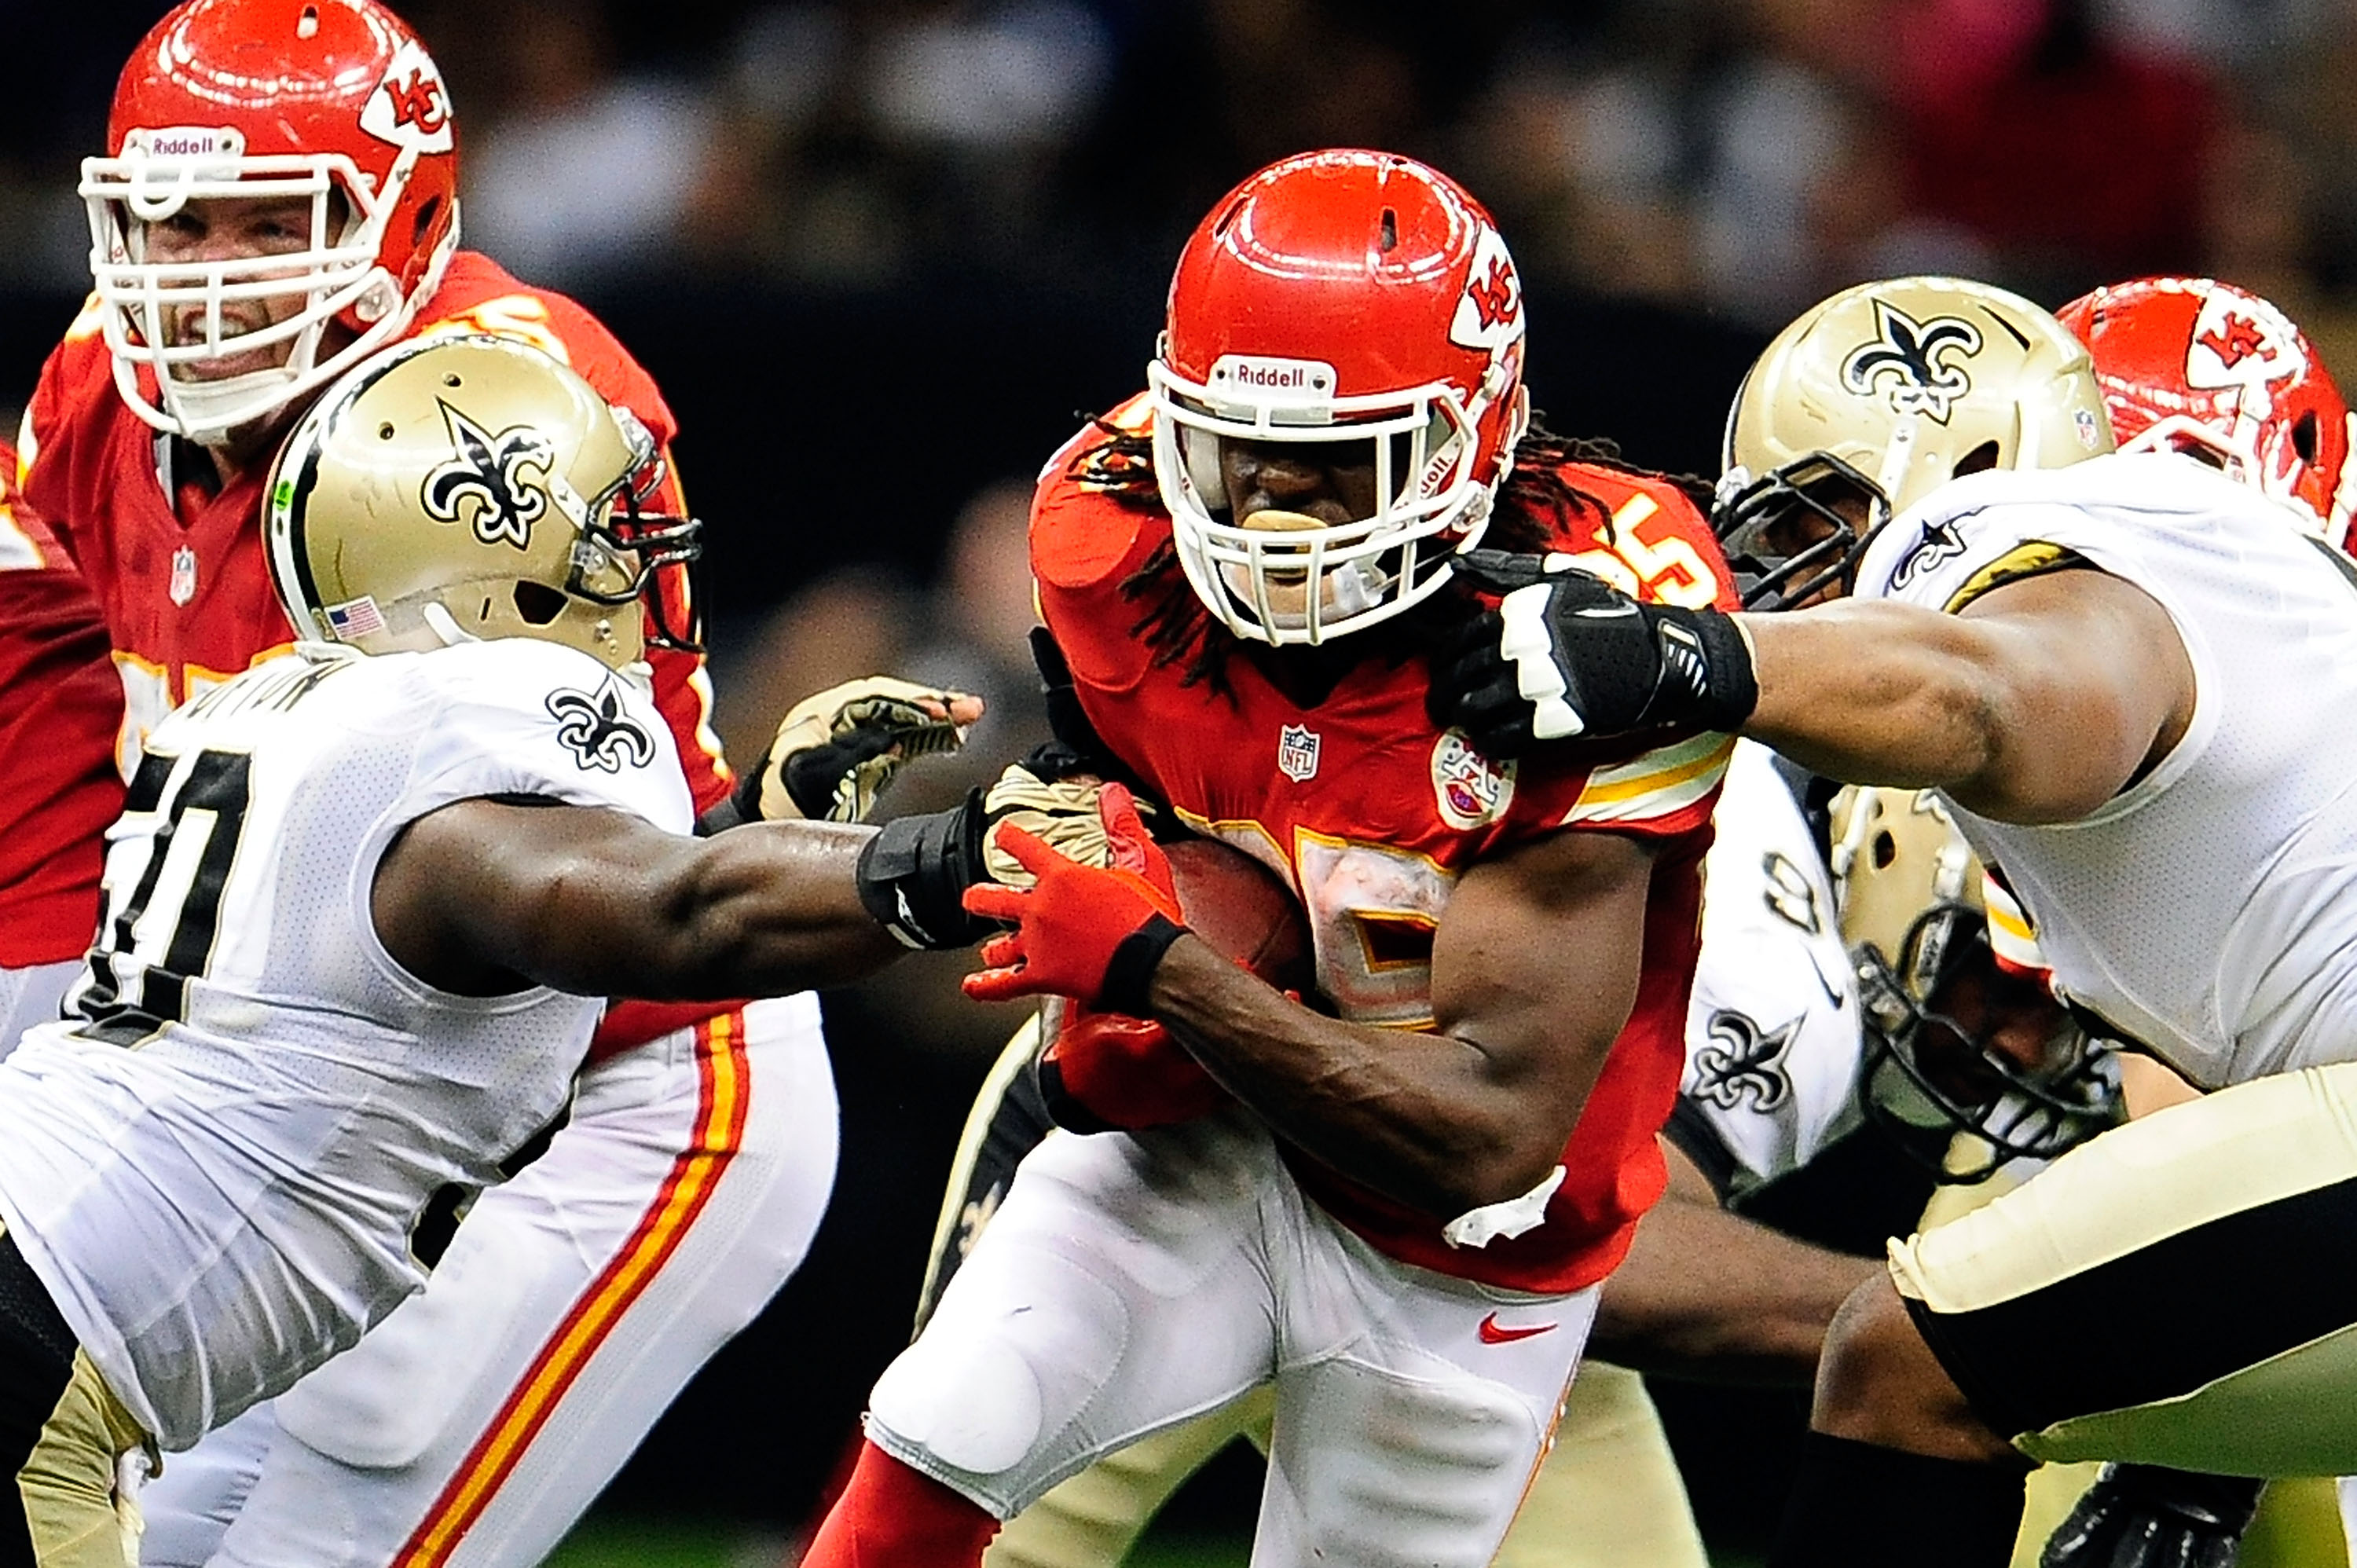 152715953-kansas-city-chiefs-v-new-orleans-saints